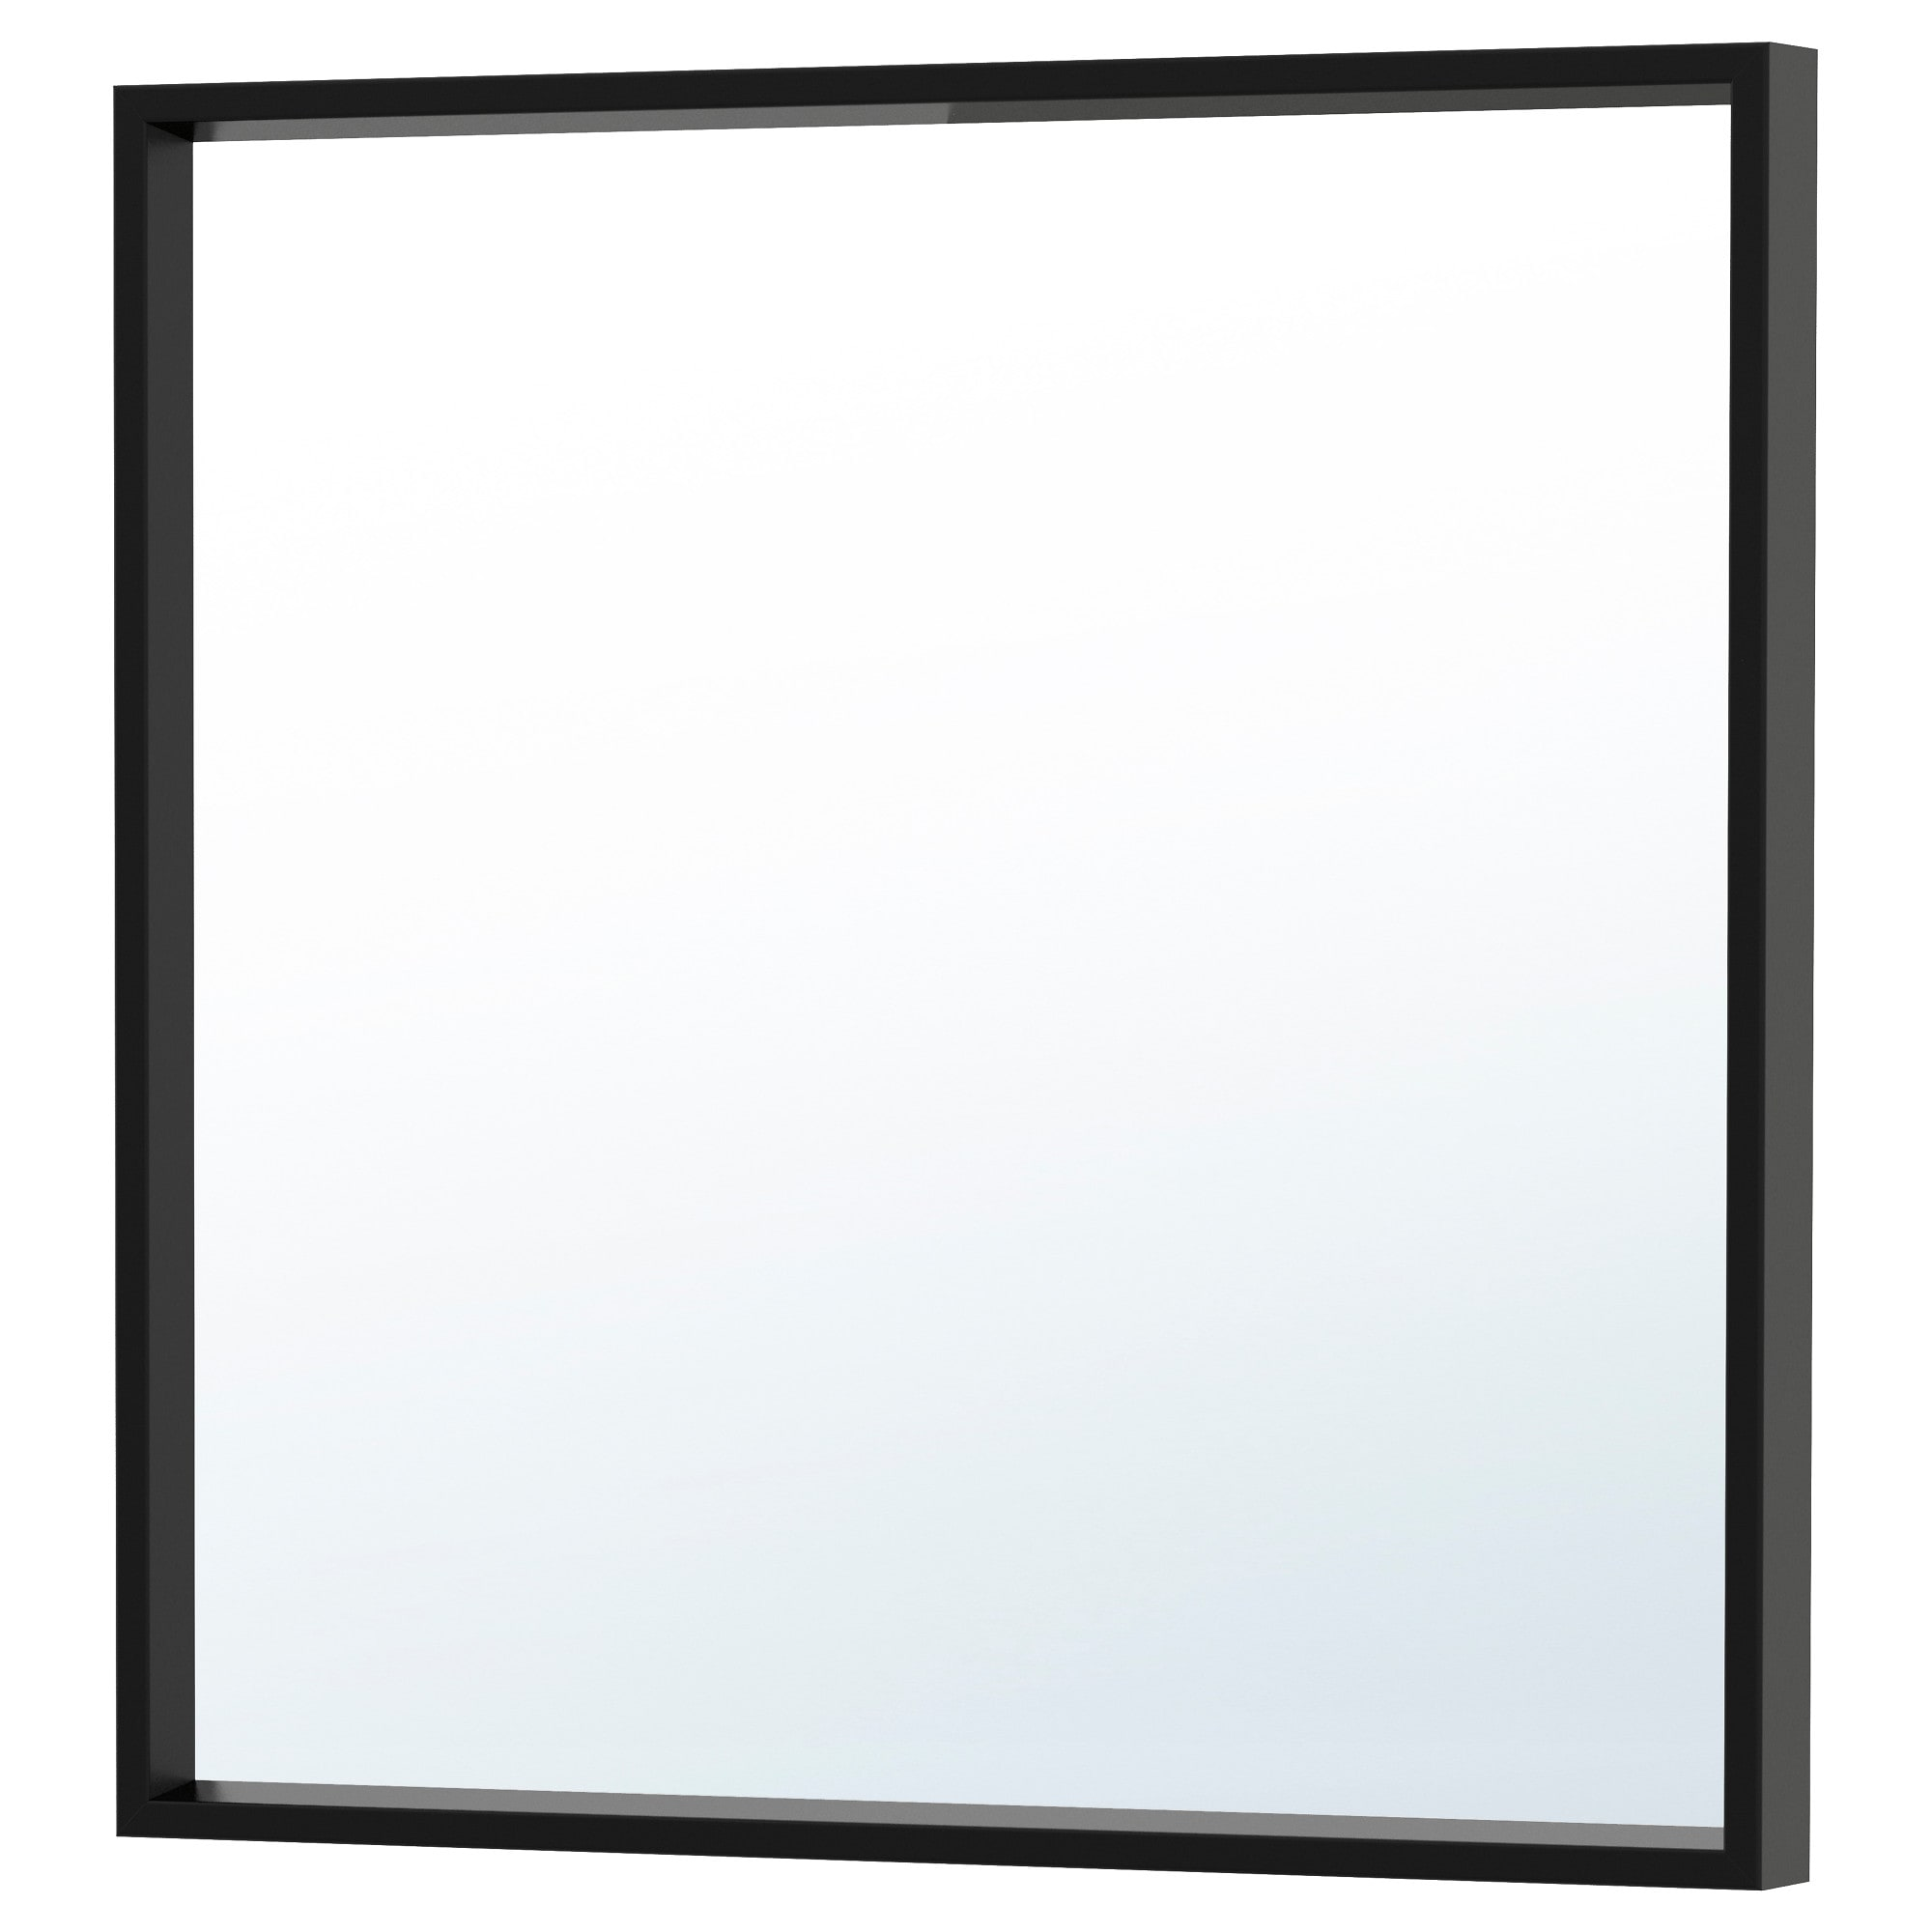 Wall mirrors ikea nissedal mirror black width 25 58 height 25 5 amipublicfo Gallery